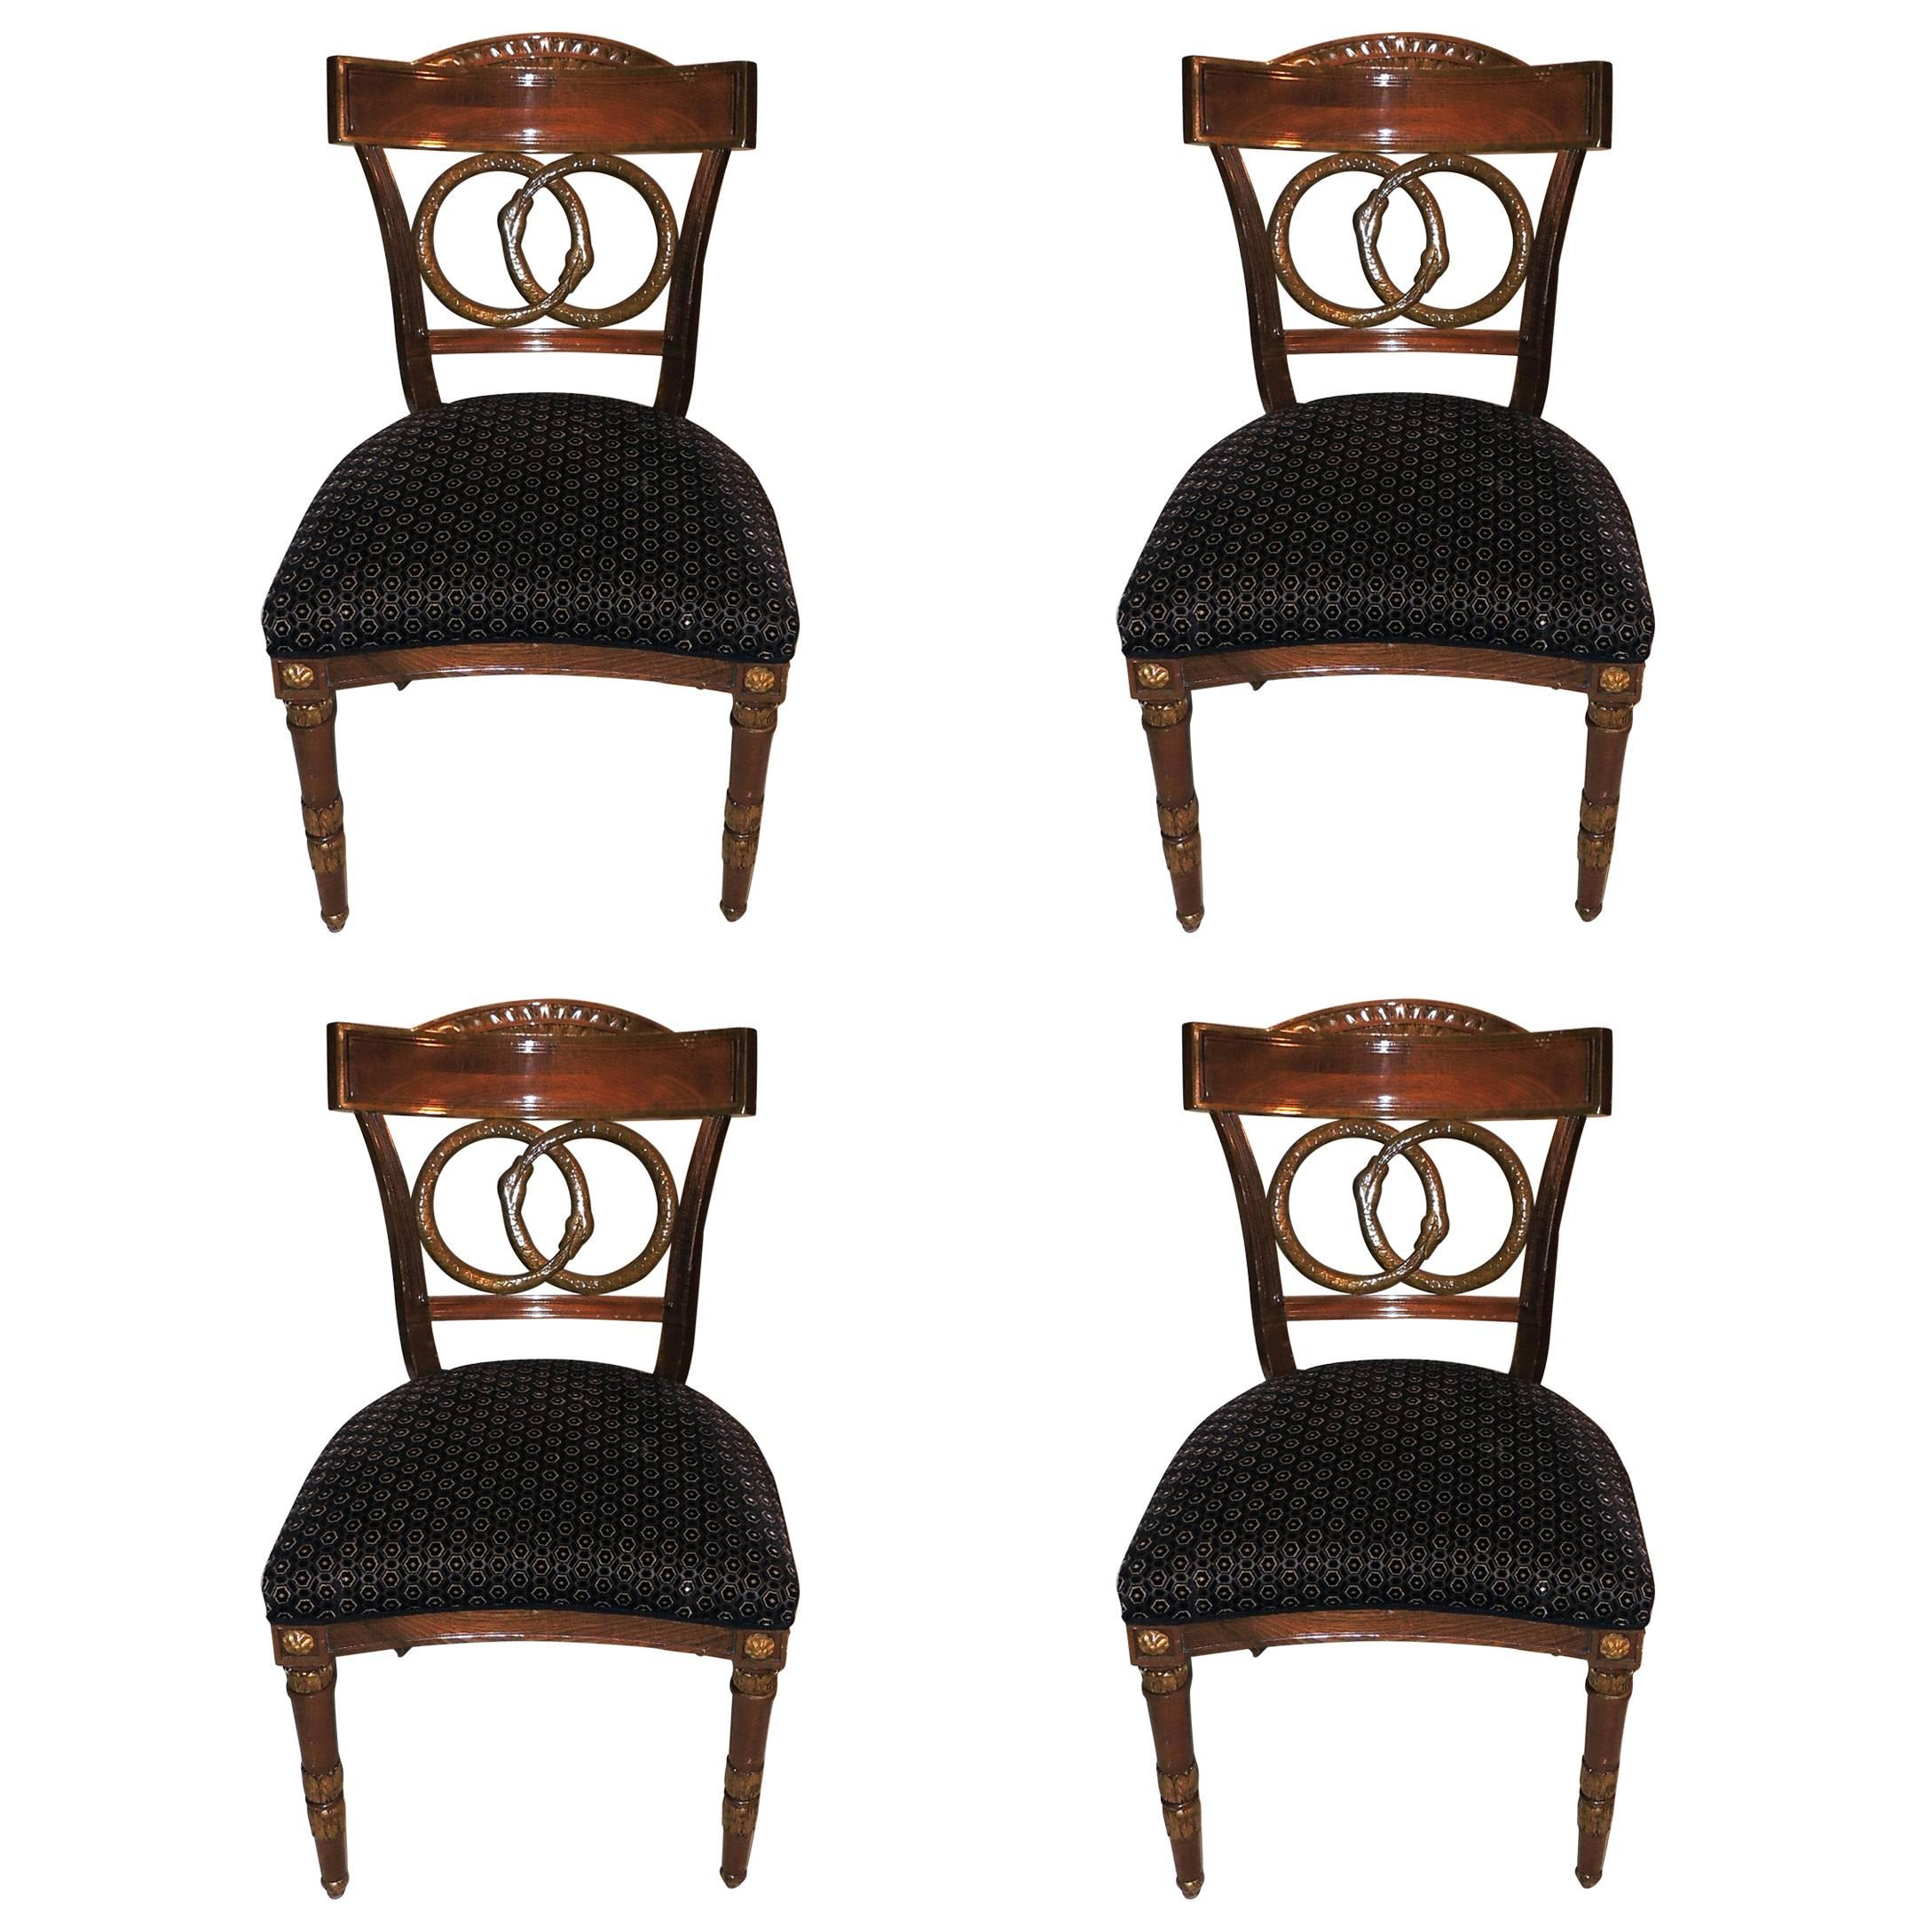 Wonderful Set of Four Regency Upholstered Neoclassical Empire Gilt Side Chairs